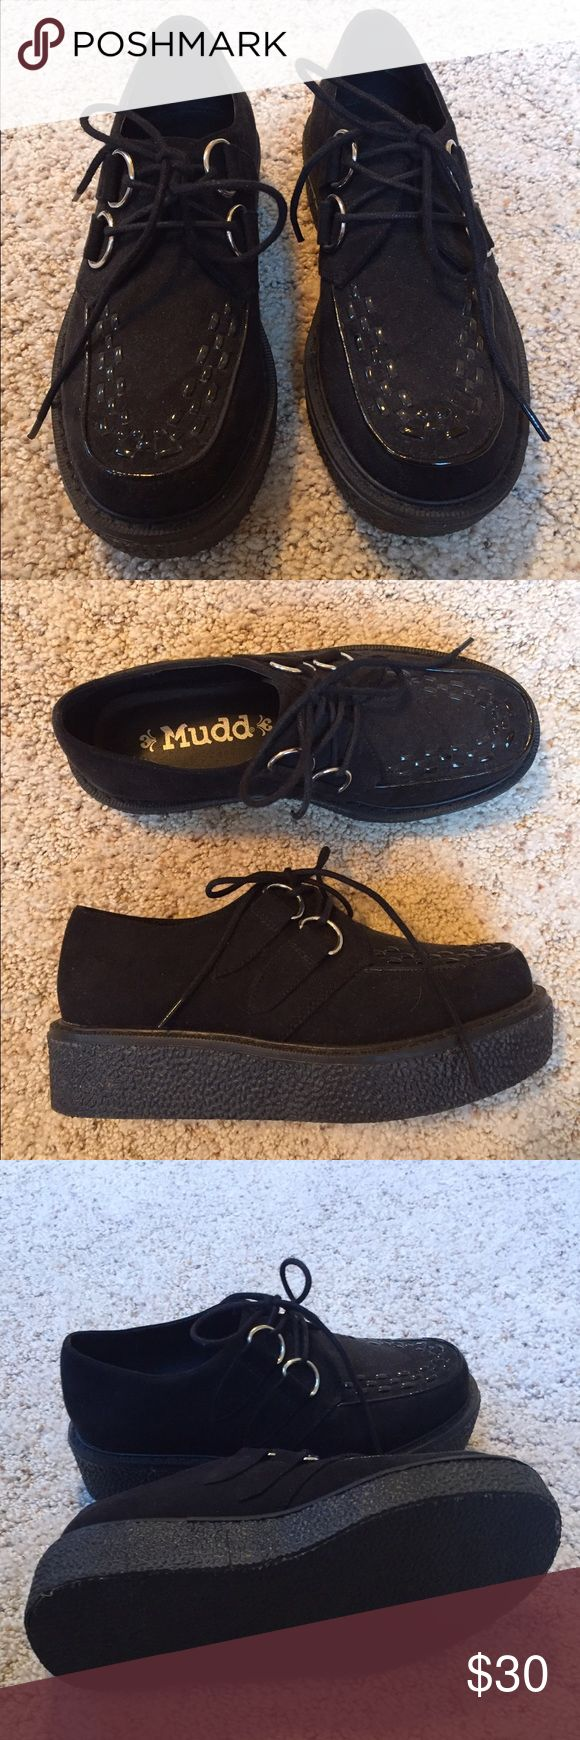 Black creepers Barely worn Mudd creepers size 5 1/2 will fit small 6 Mudd Shoes Sneakers